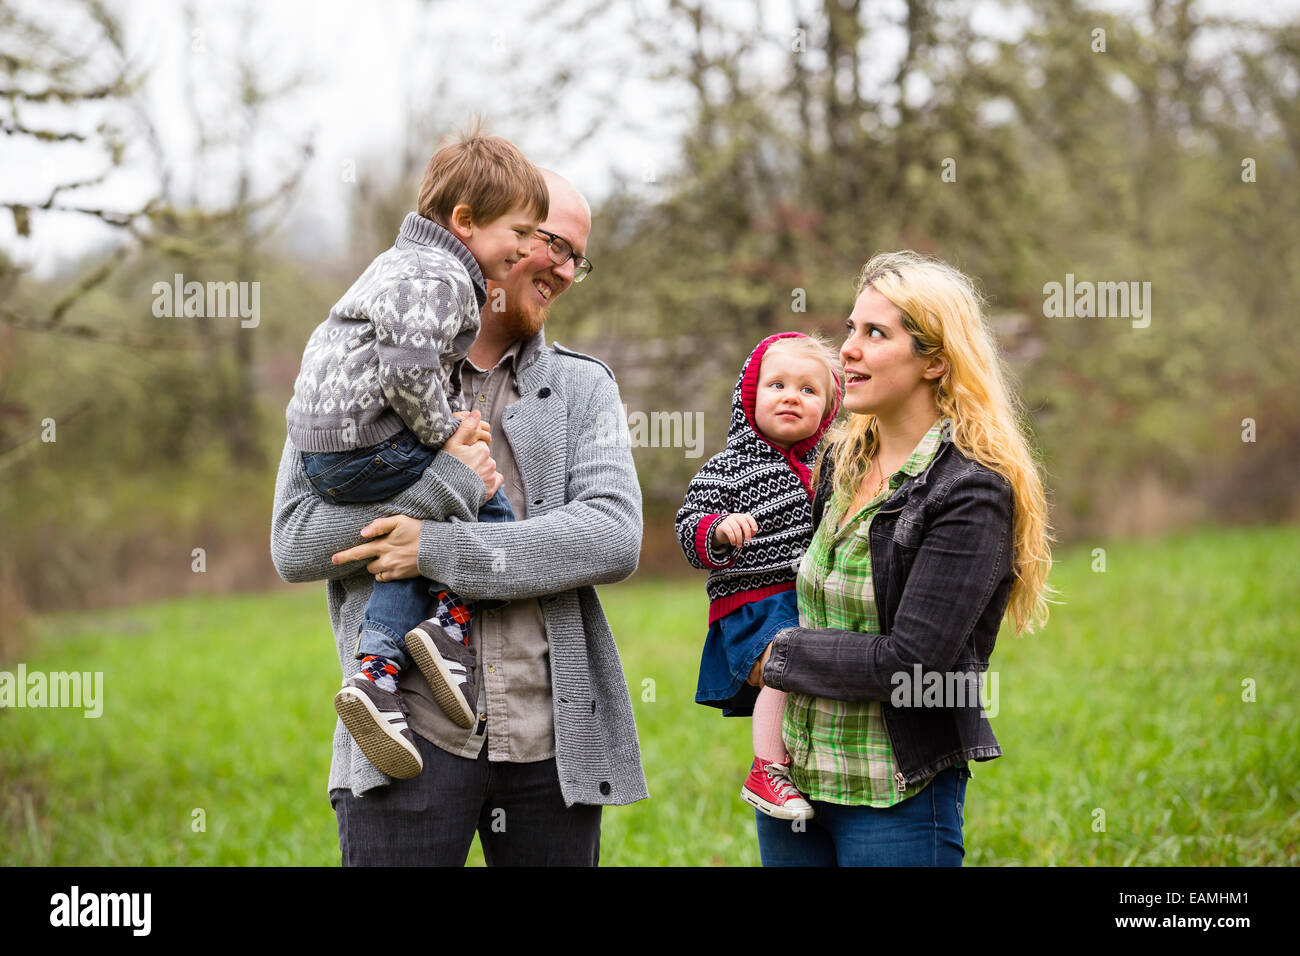 Lifestyle portrait of a family of four including a mother, father, son, and daughter interacting showing happiness. - Stock Image